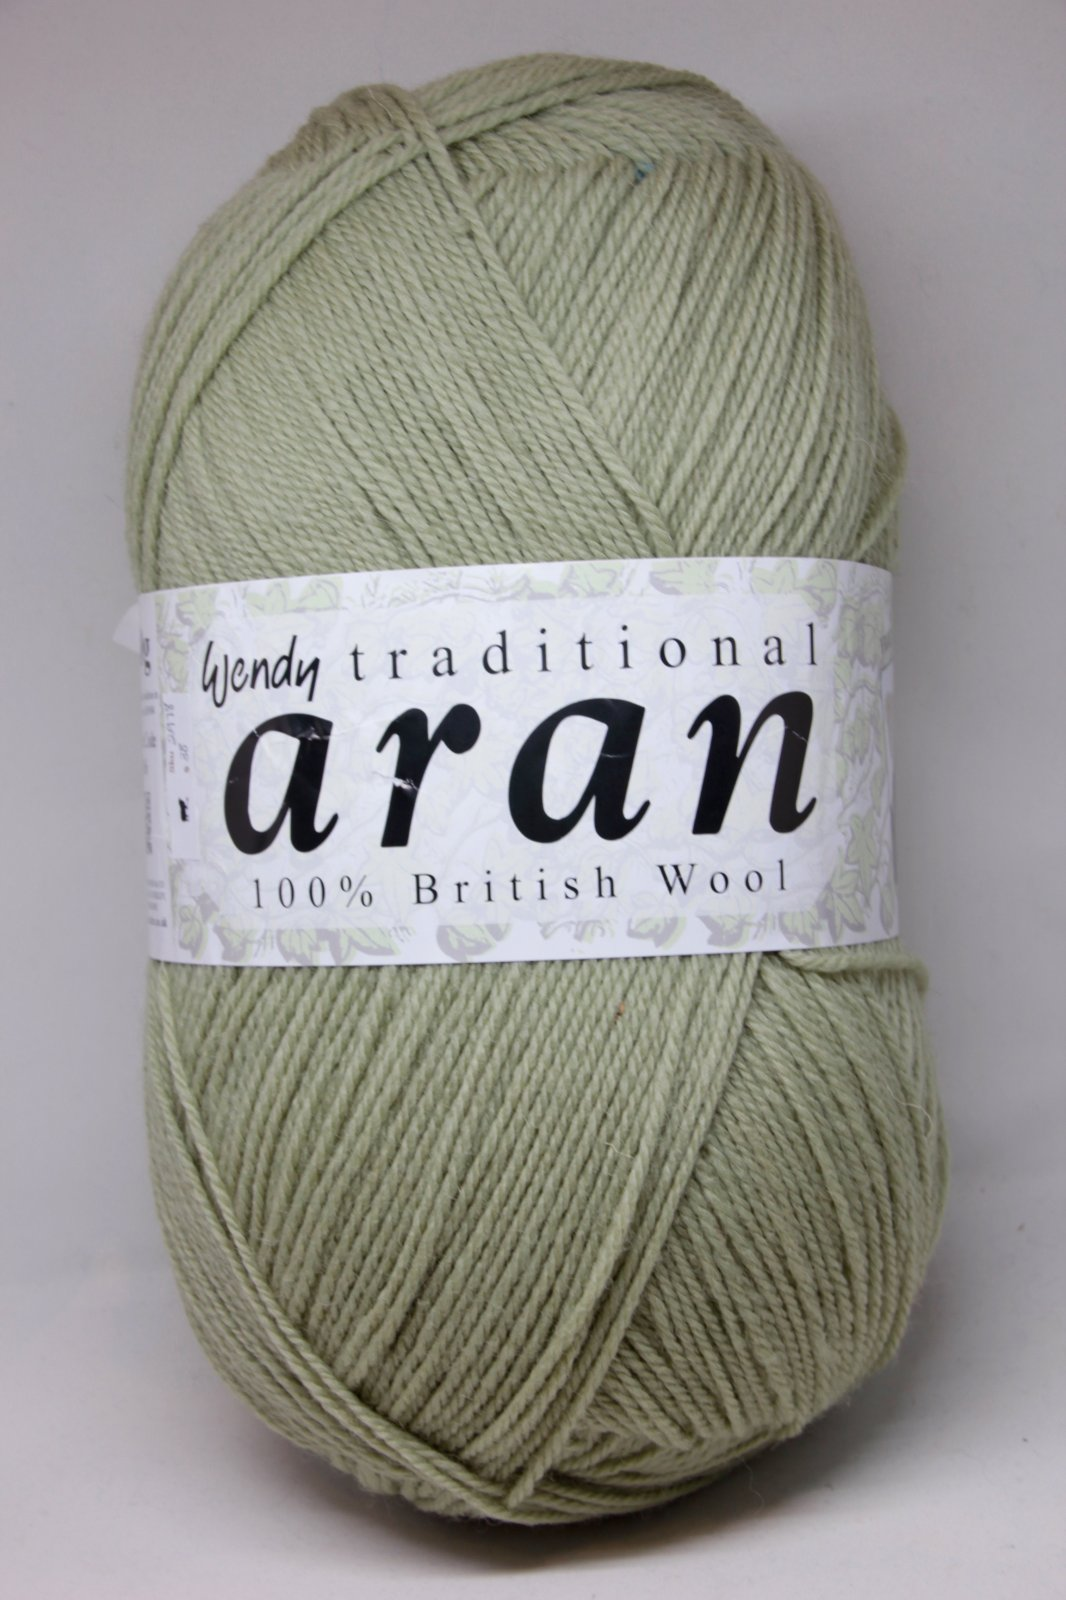 Wendy Traditional Aran 100% British Wool (Yarn Babies)